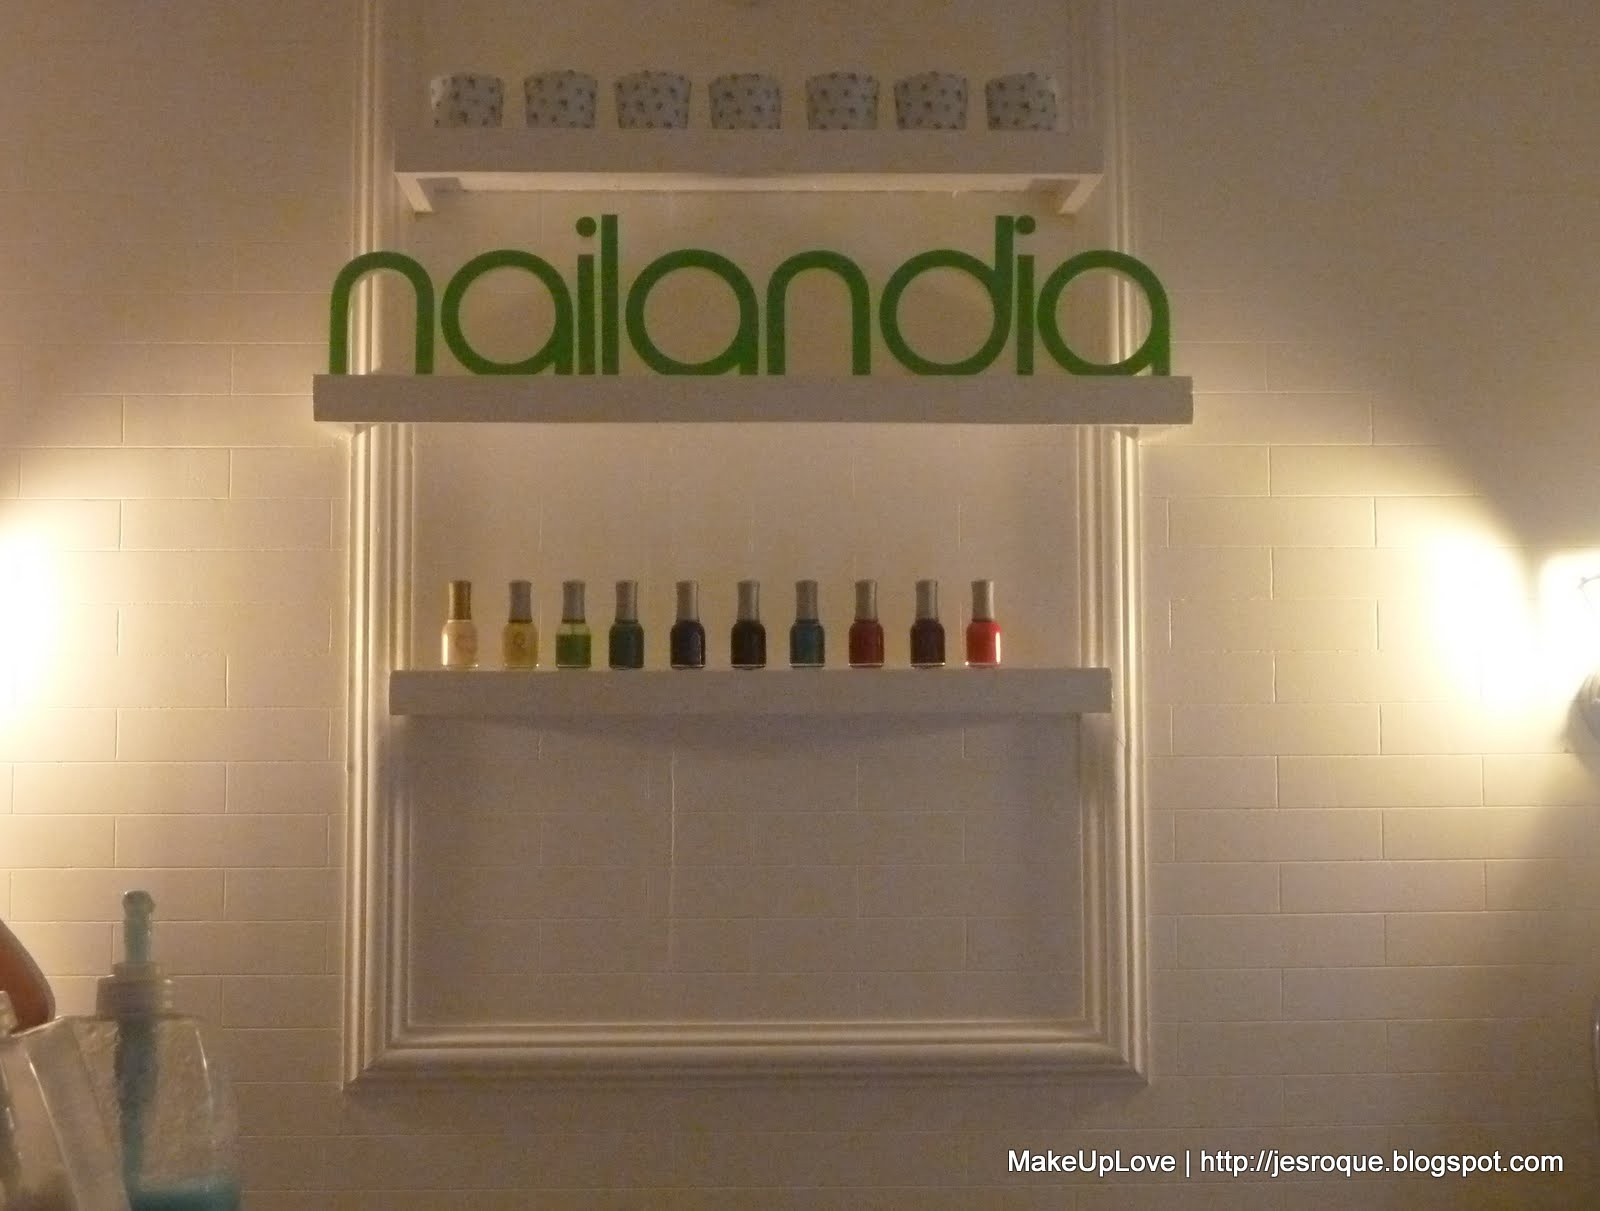 About Nailandia Is That It Not As Crowded Other Nail Salons Studios There Was Only One Customer When Kei Keislifestylecloset And I Arrived